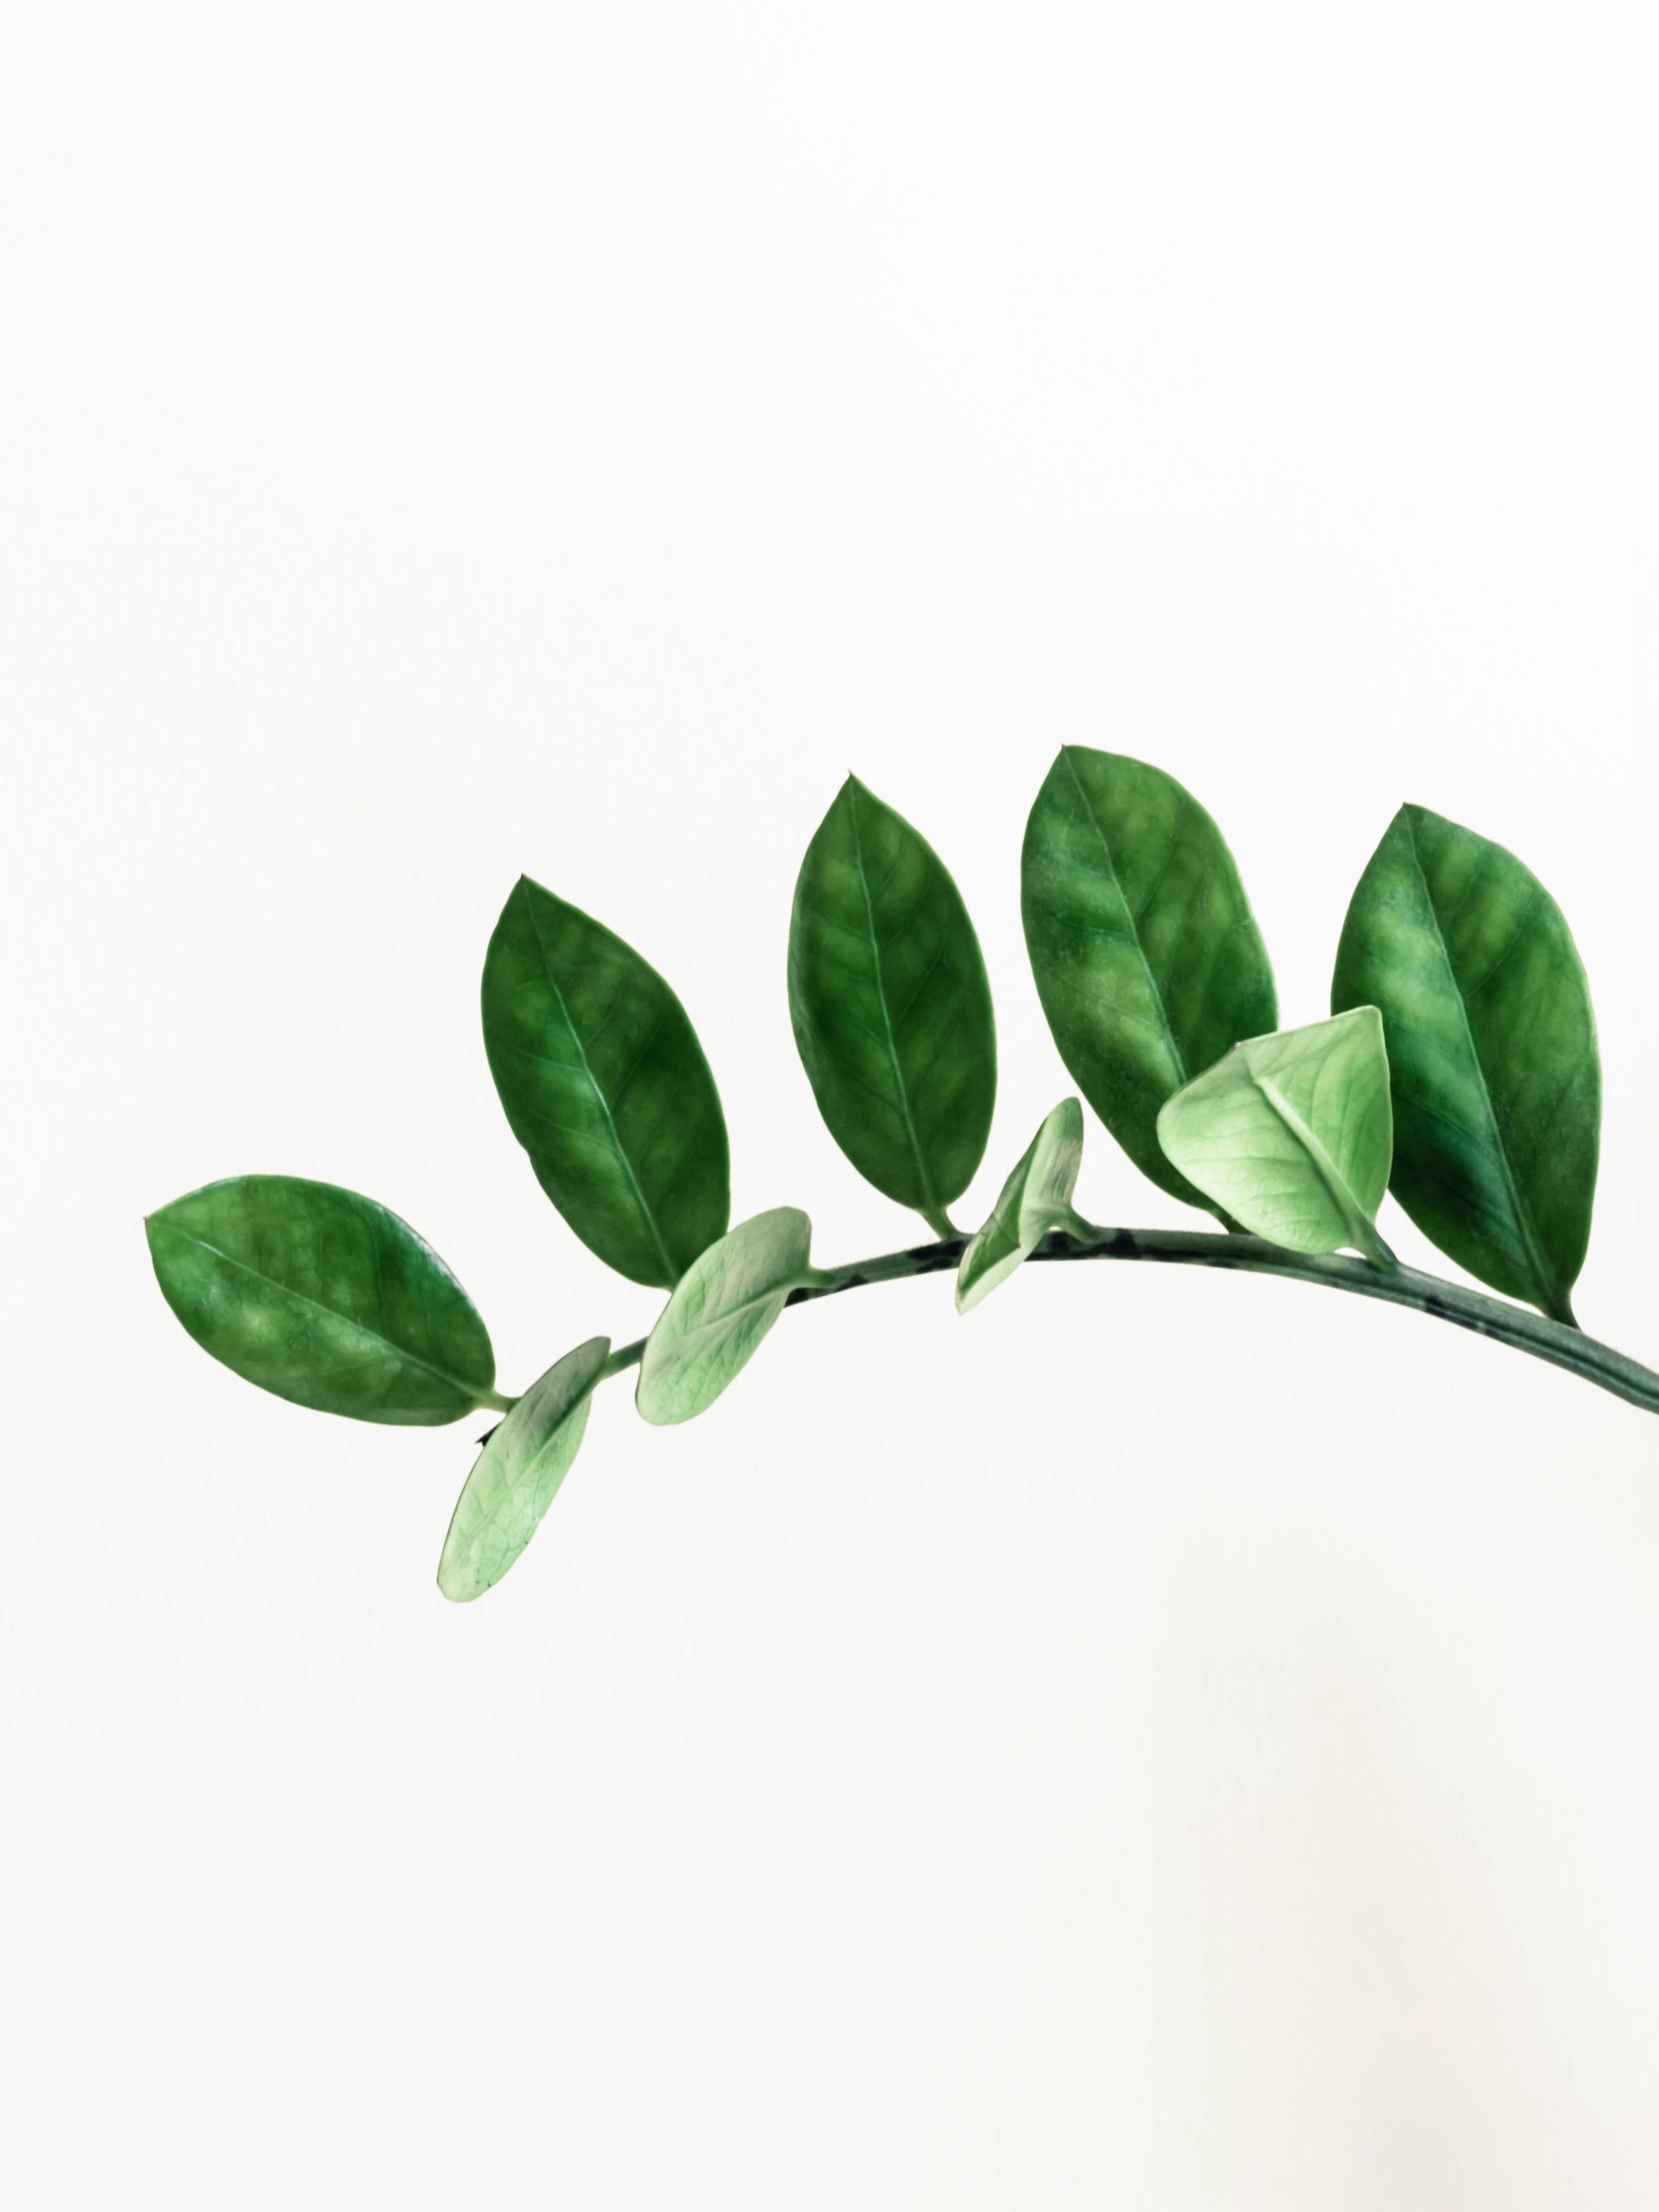 A green leafed plant.